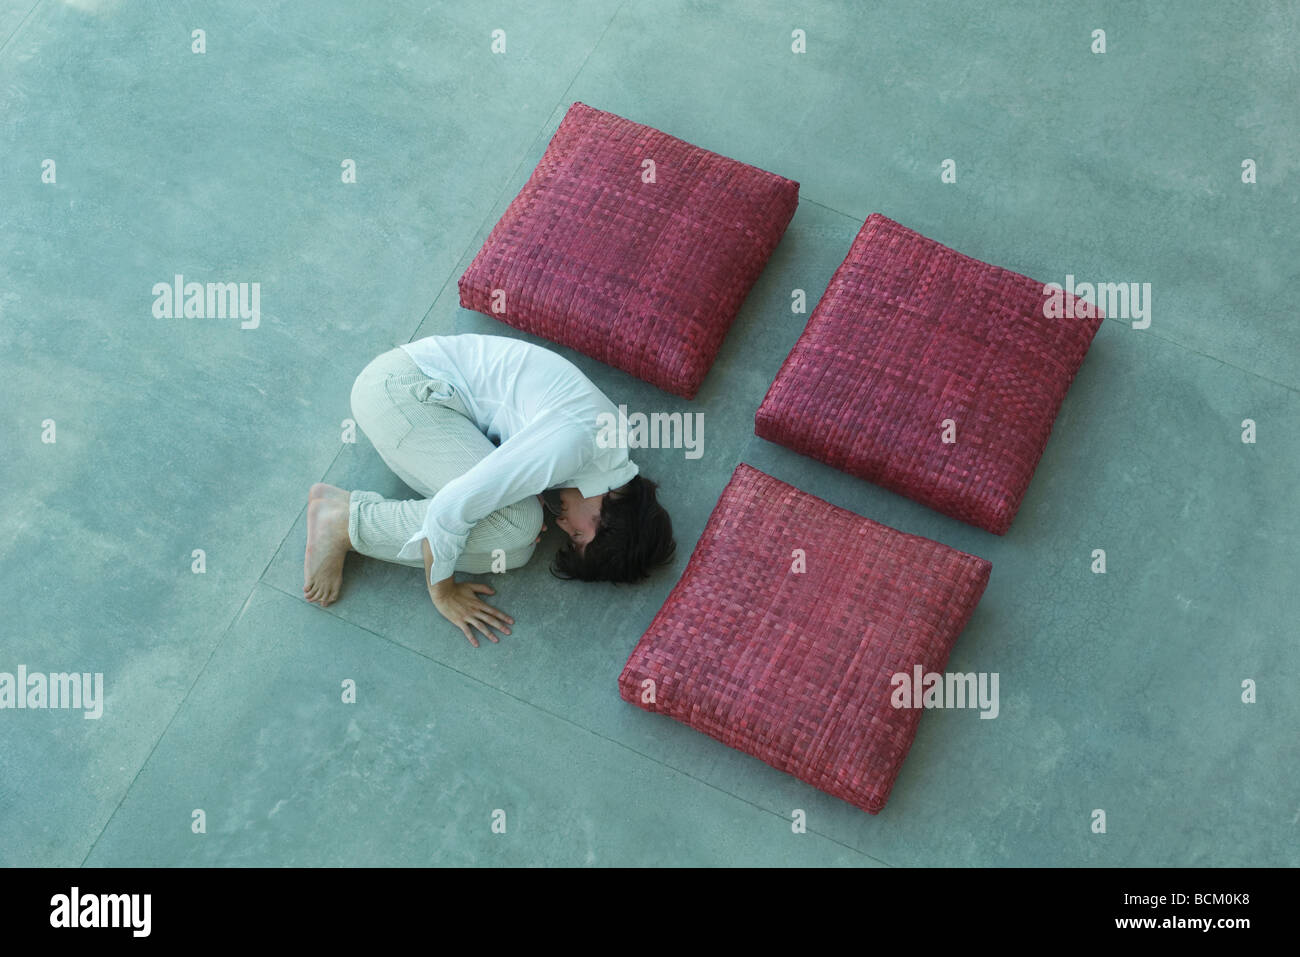 Three square cushions and man arranged in square shape, man lying in fetal position, high angle view - Stock Image